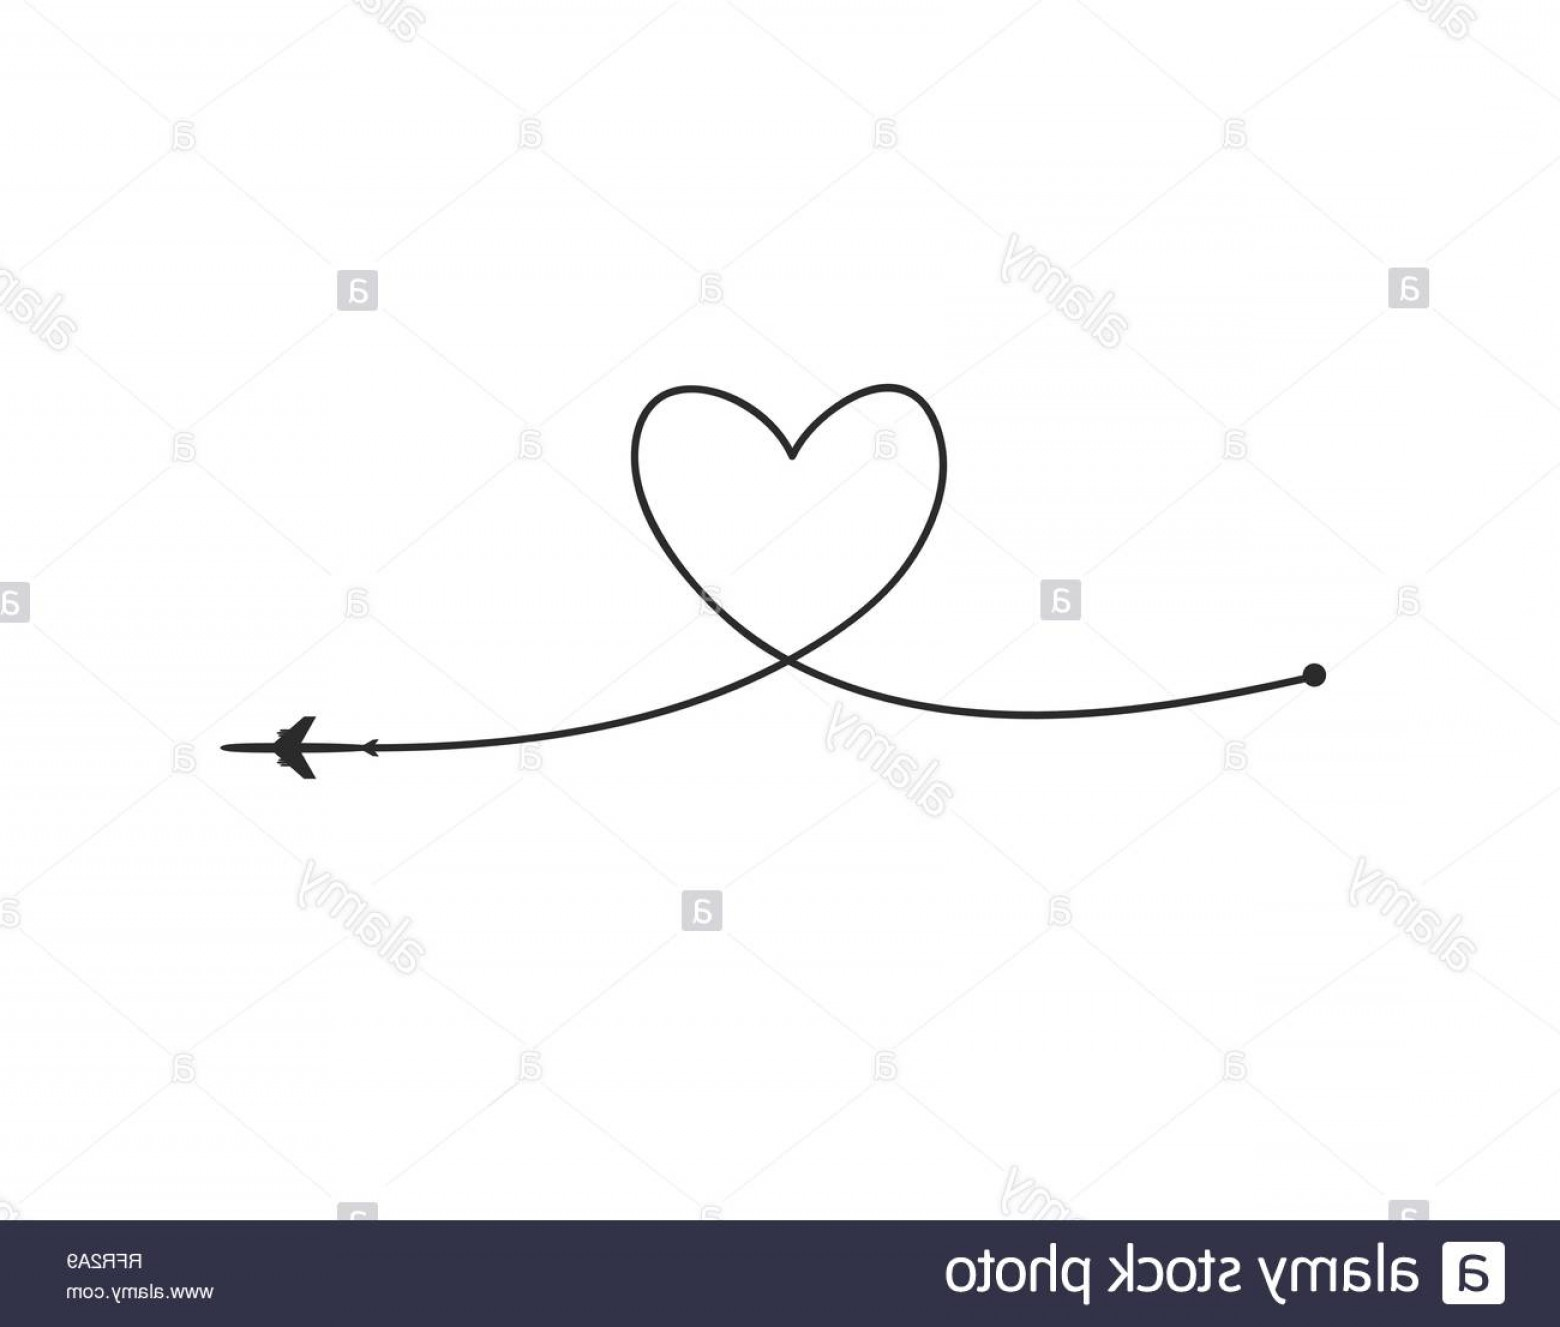 Black Heart And Plane Vector: Plane And Its Track In The Shape Of A Heart On White Background Vector Illustration Aircraft Flight Path And Its Route Image